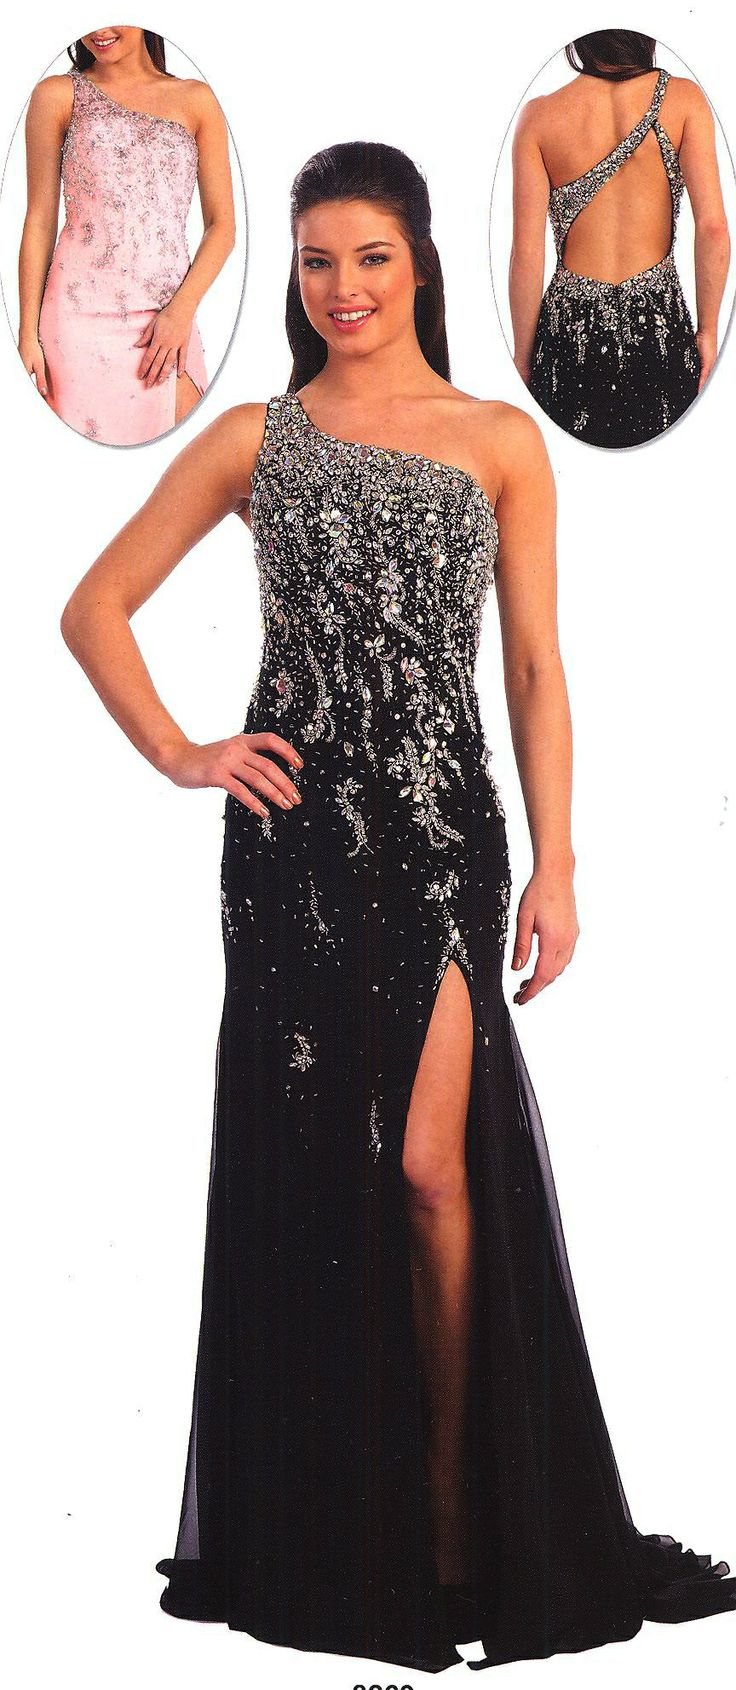 Prom DressPageant Dress under $2608269A Bit Daring!